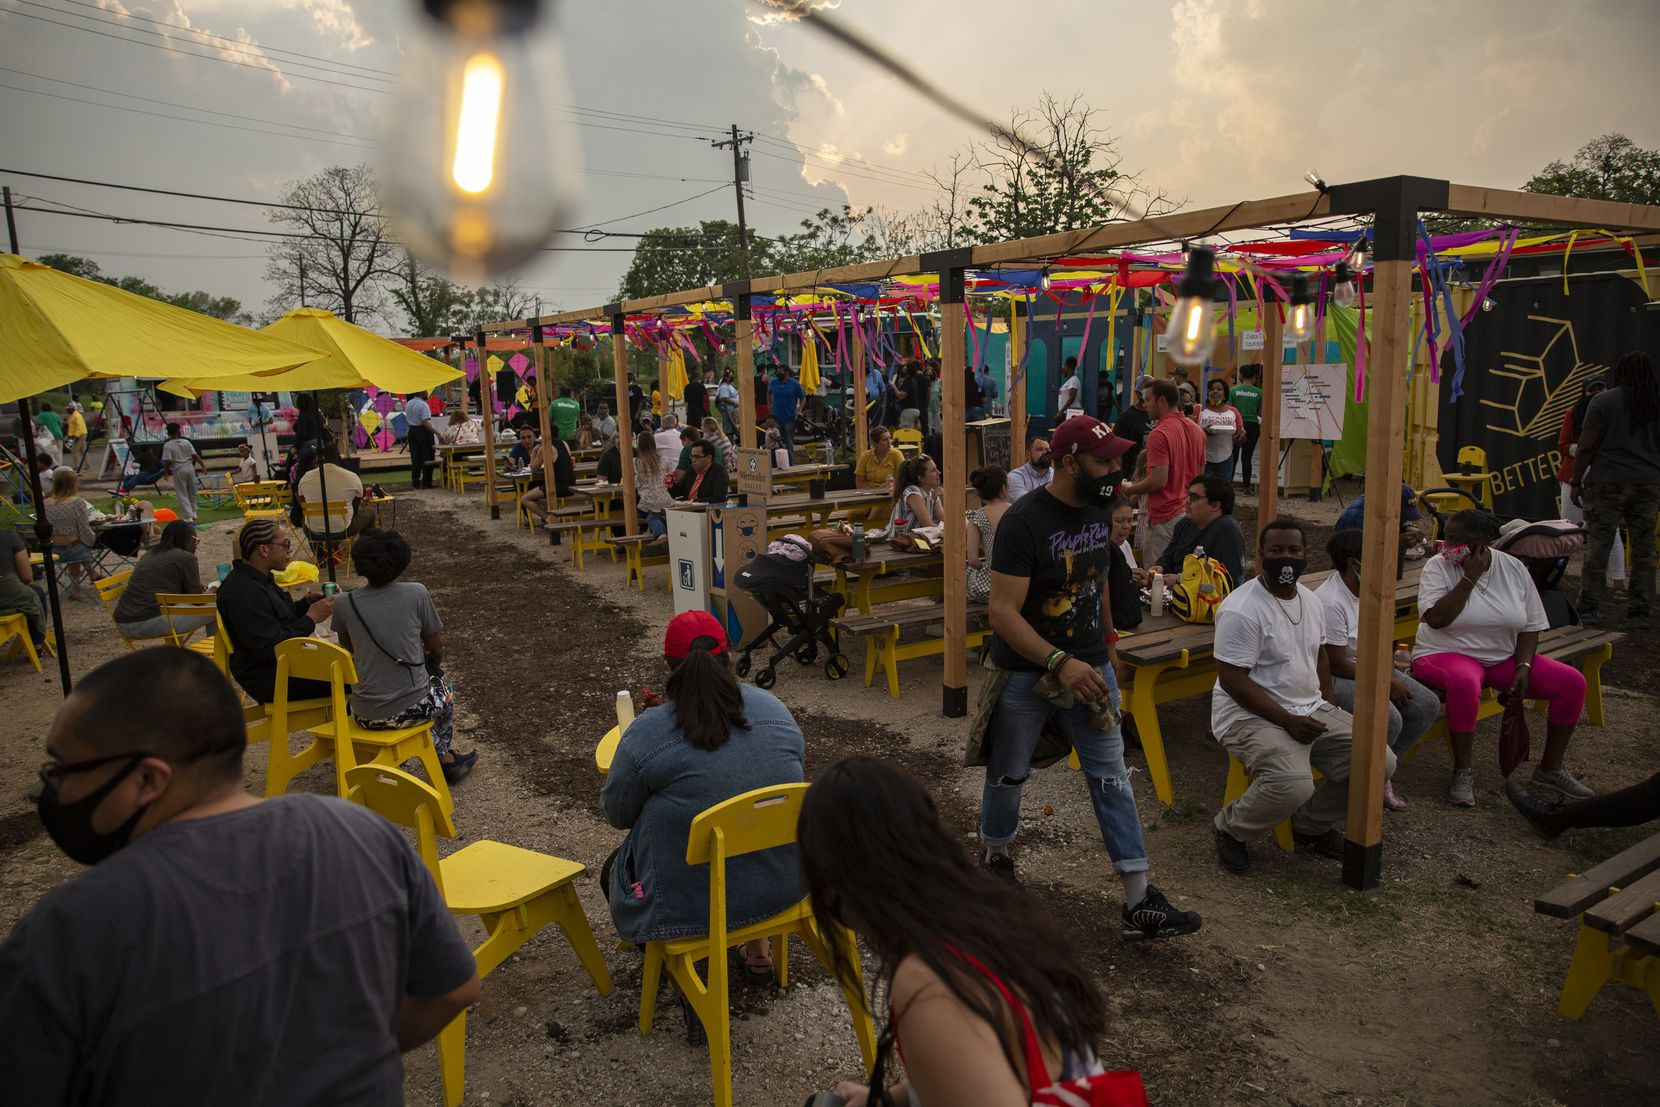 People enjoyed the variety of food, live music, community gardens and play area for the kids at the MLK Food Park.